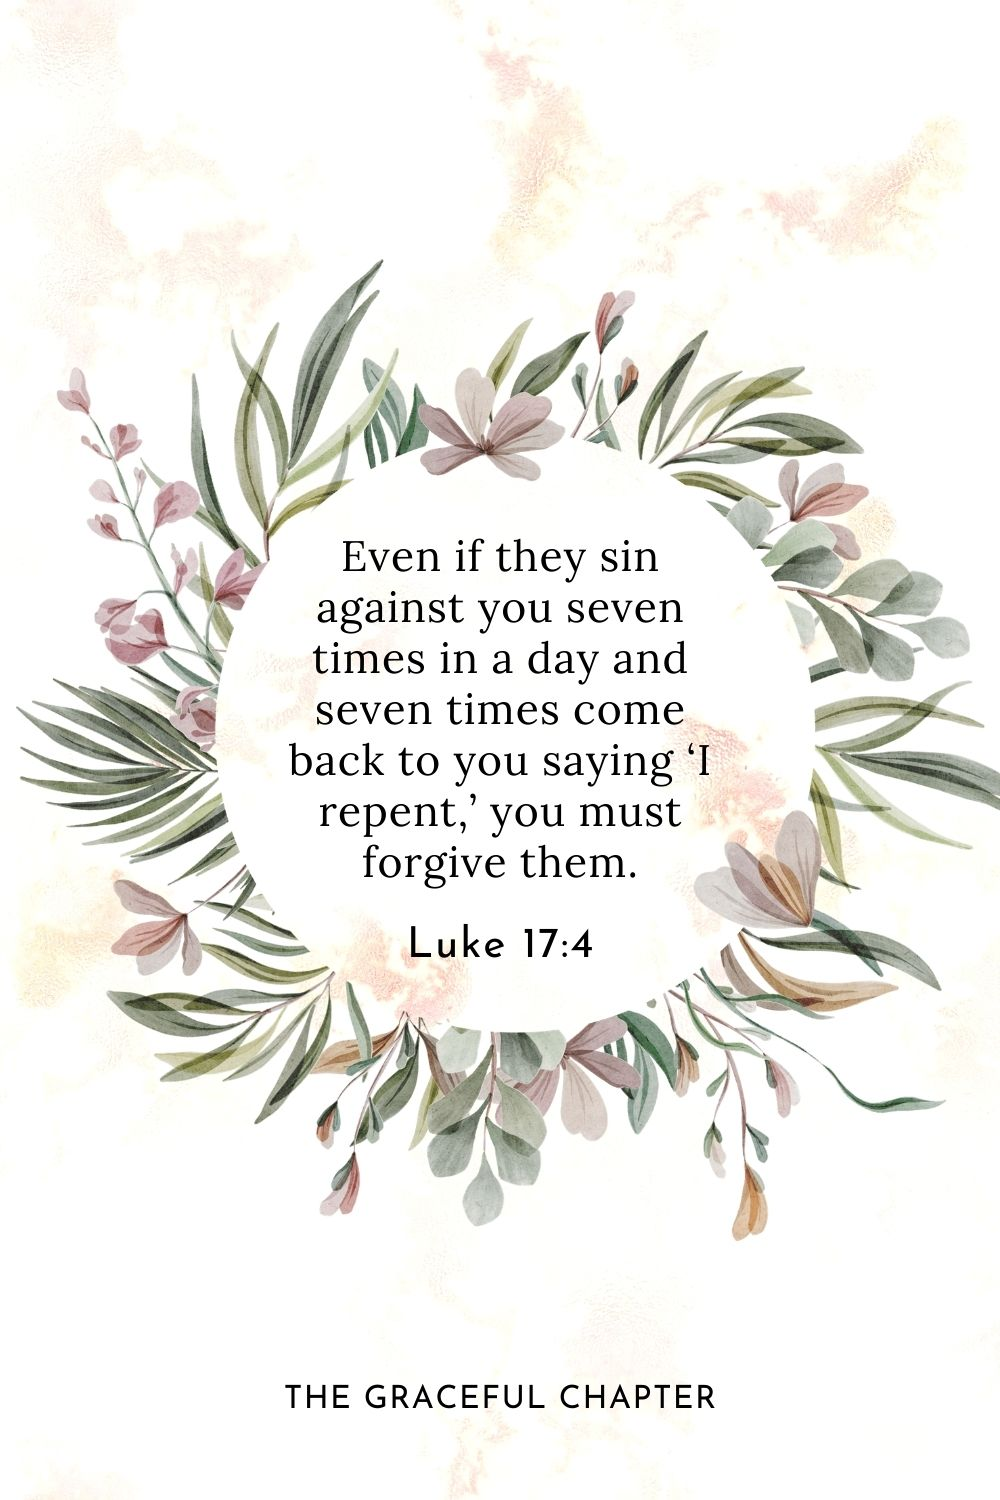 Even if they sin against you seven times in a day and seven times come back to you saying 'I repent,' you must forgive them. Luke 17:4